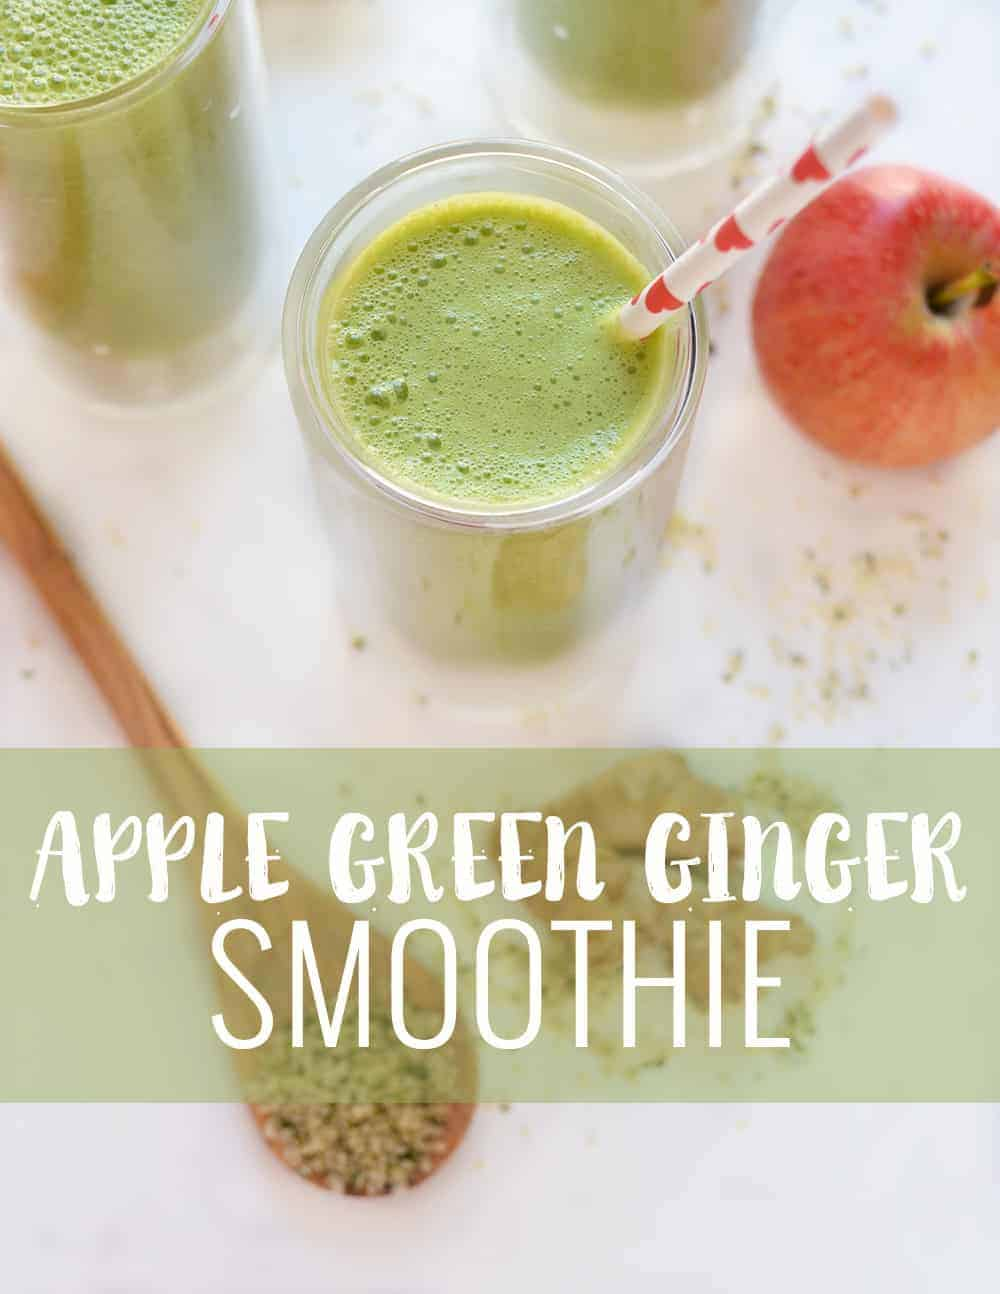 Apple Green Ginger Smoothie! This superfood smoothie is perfect, nutrient dense snack. Take a break from #pumpkineverything with this one! Apple & Ginger, perfect for fall.   www.delishknowledge.com